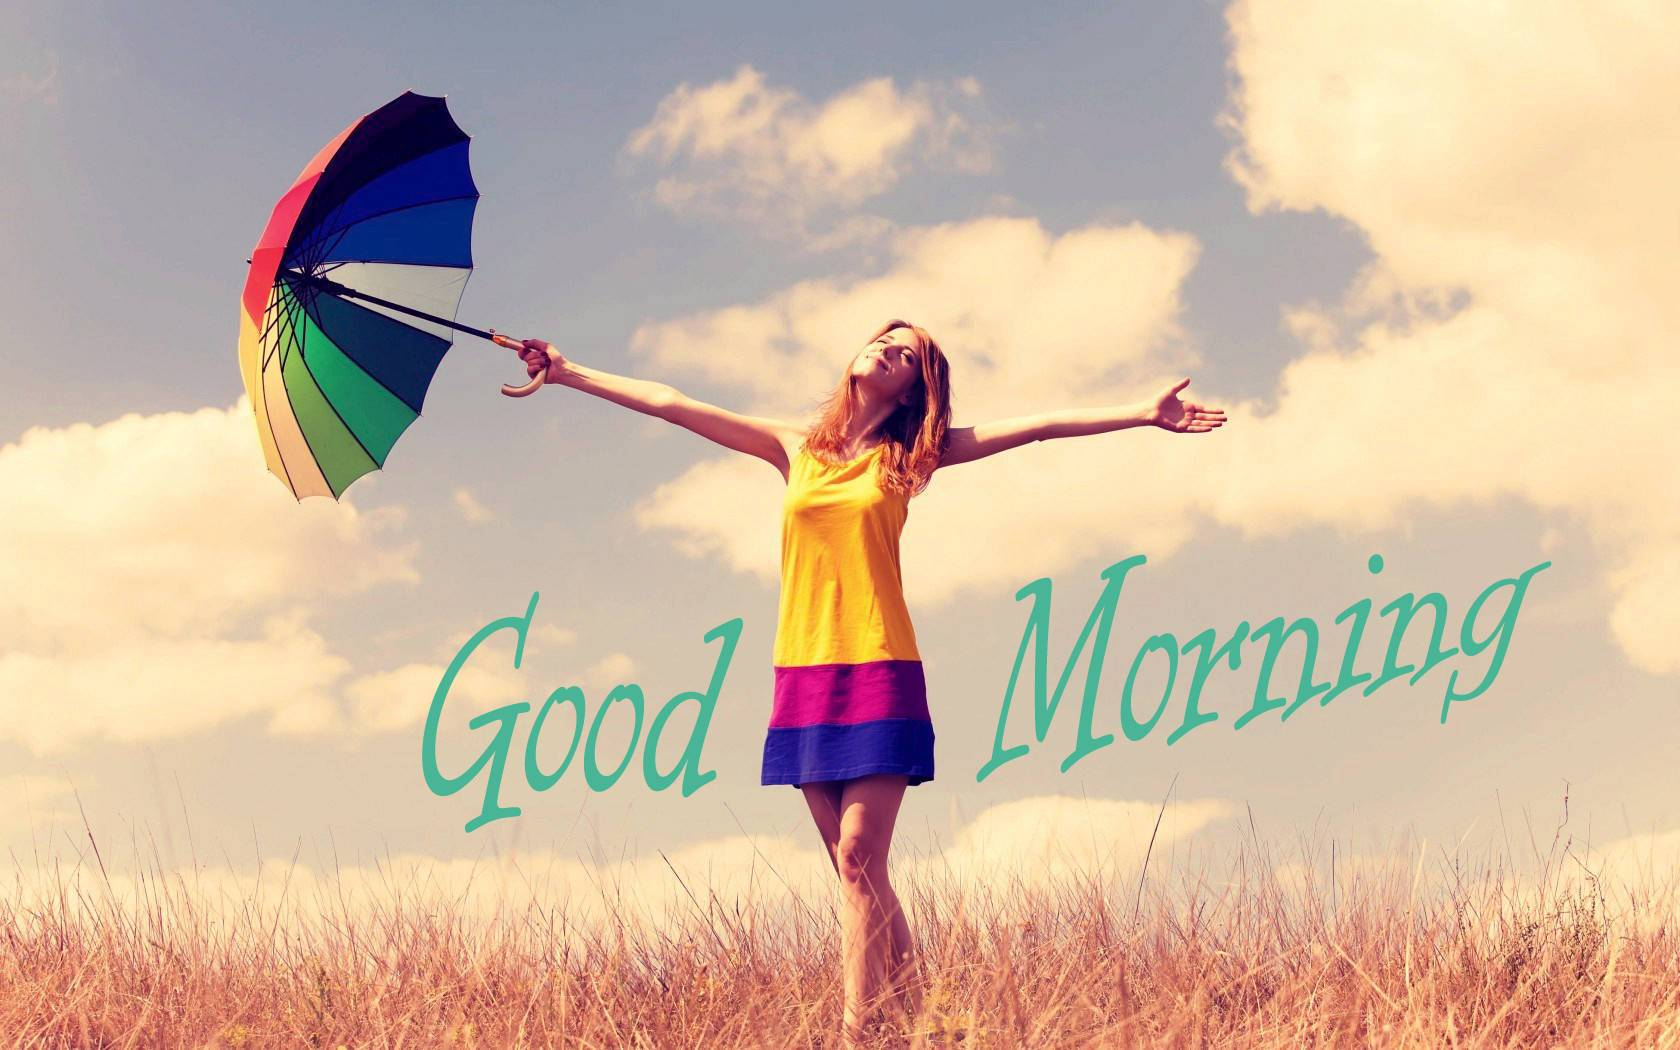 Good Morning Girl With Lovely Morning Special Image - Good Morning With Girls , HD Wallpaper & Backgrounds